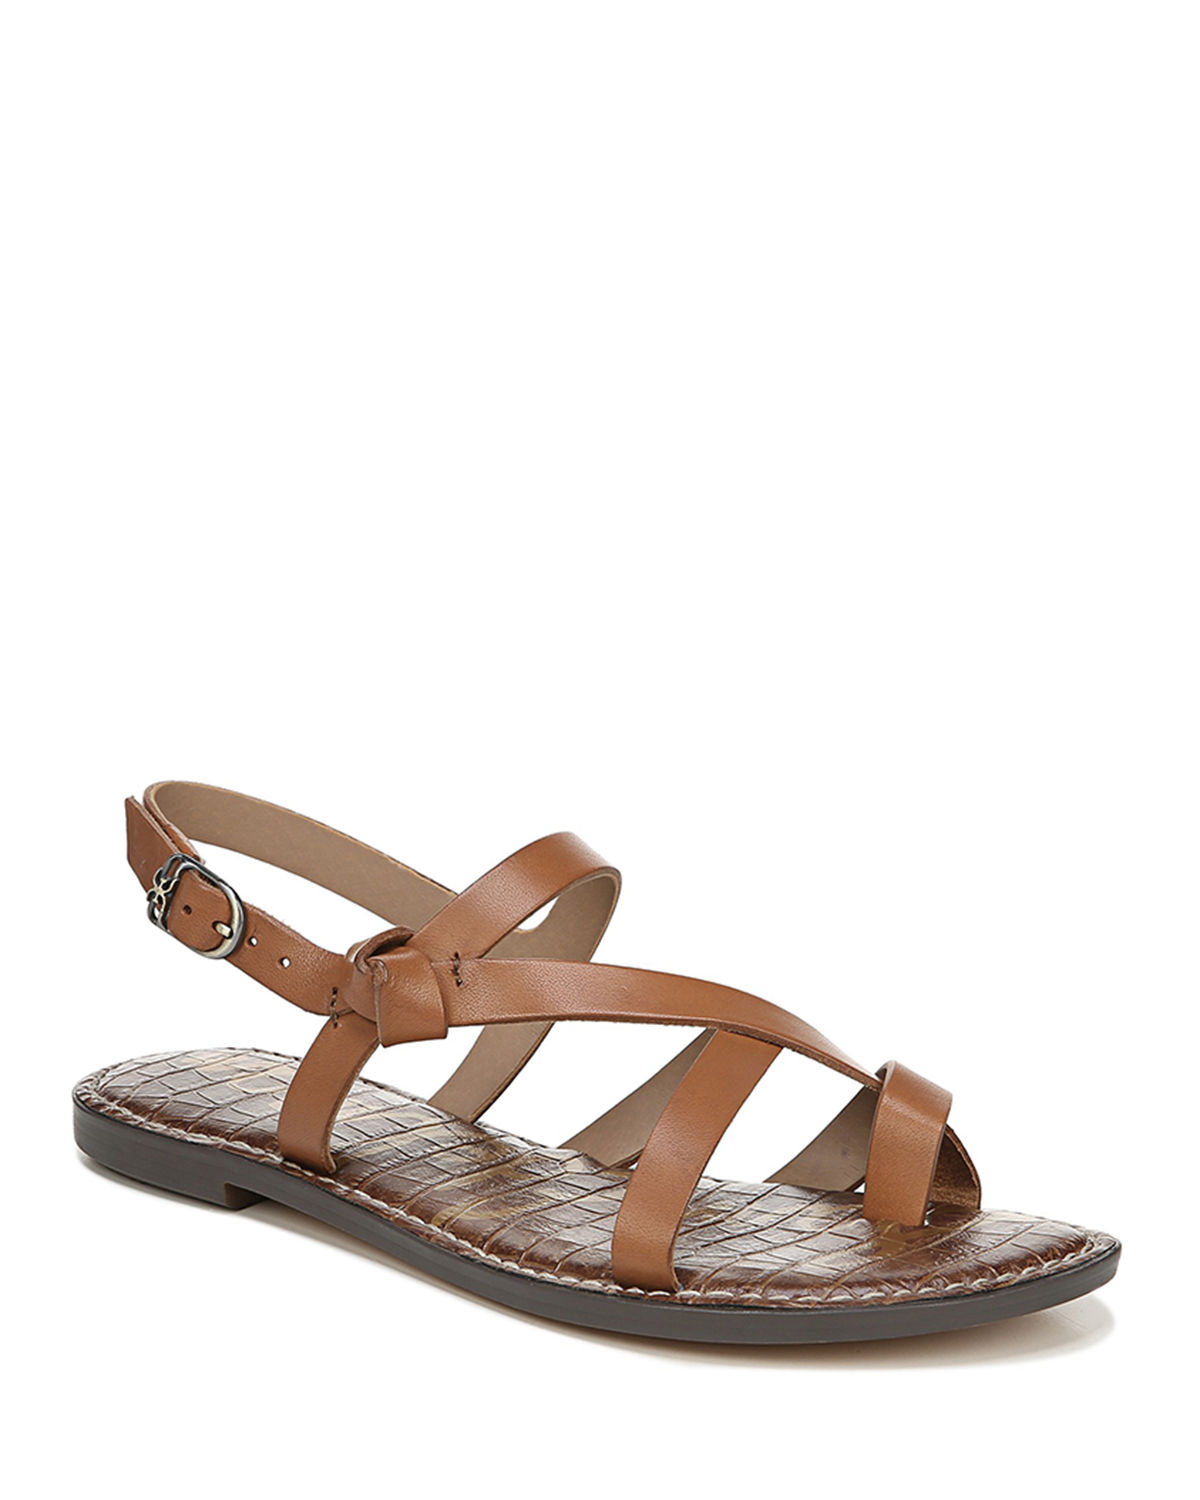 61d251d96 Sam Edelman Gladis Strappy Leather Flat Sandals